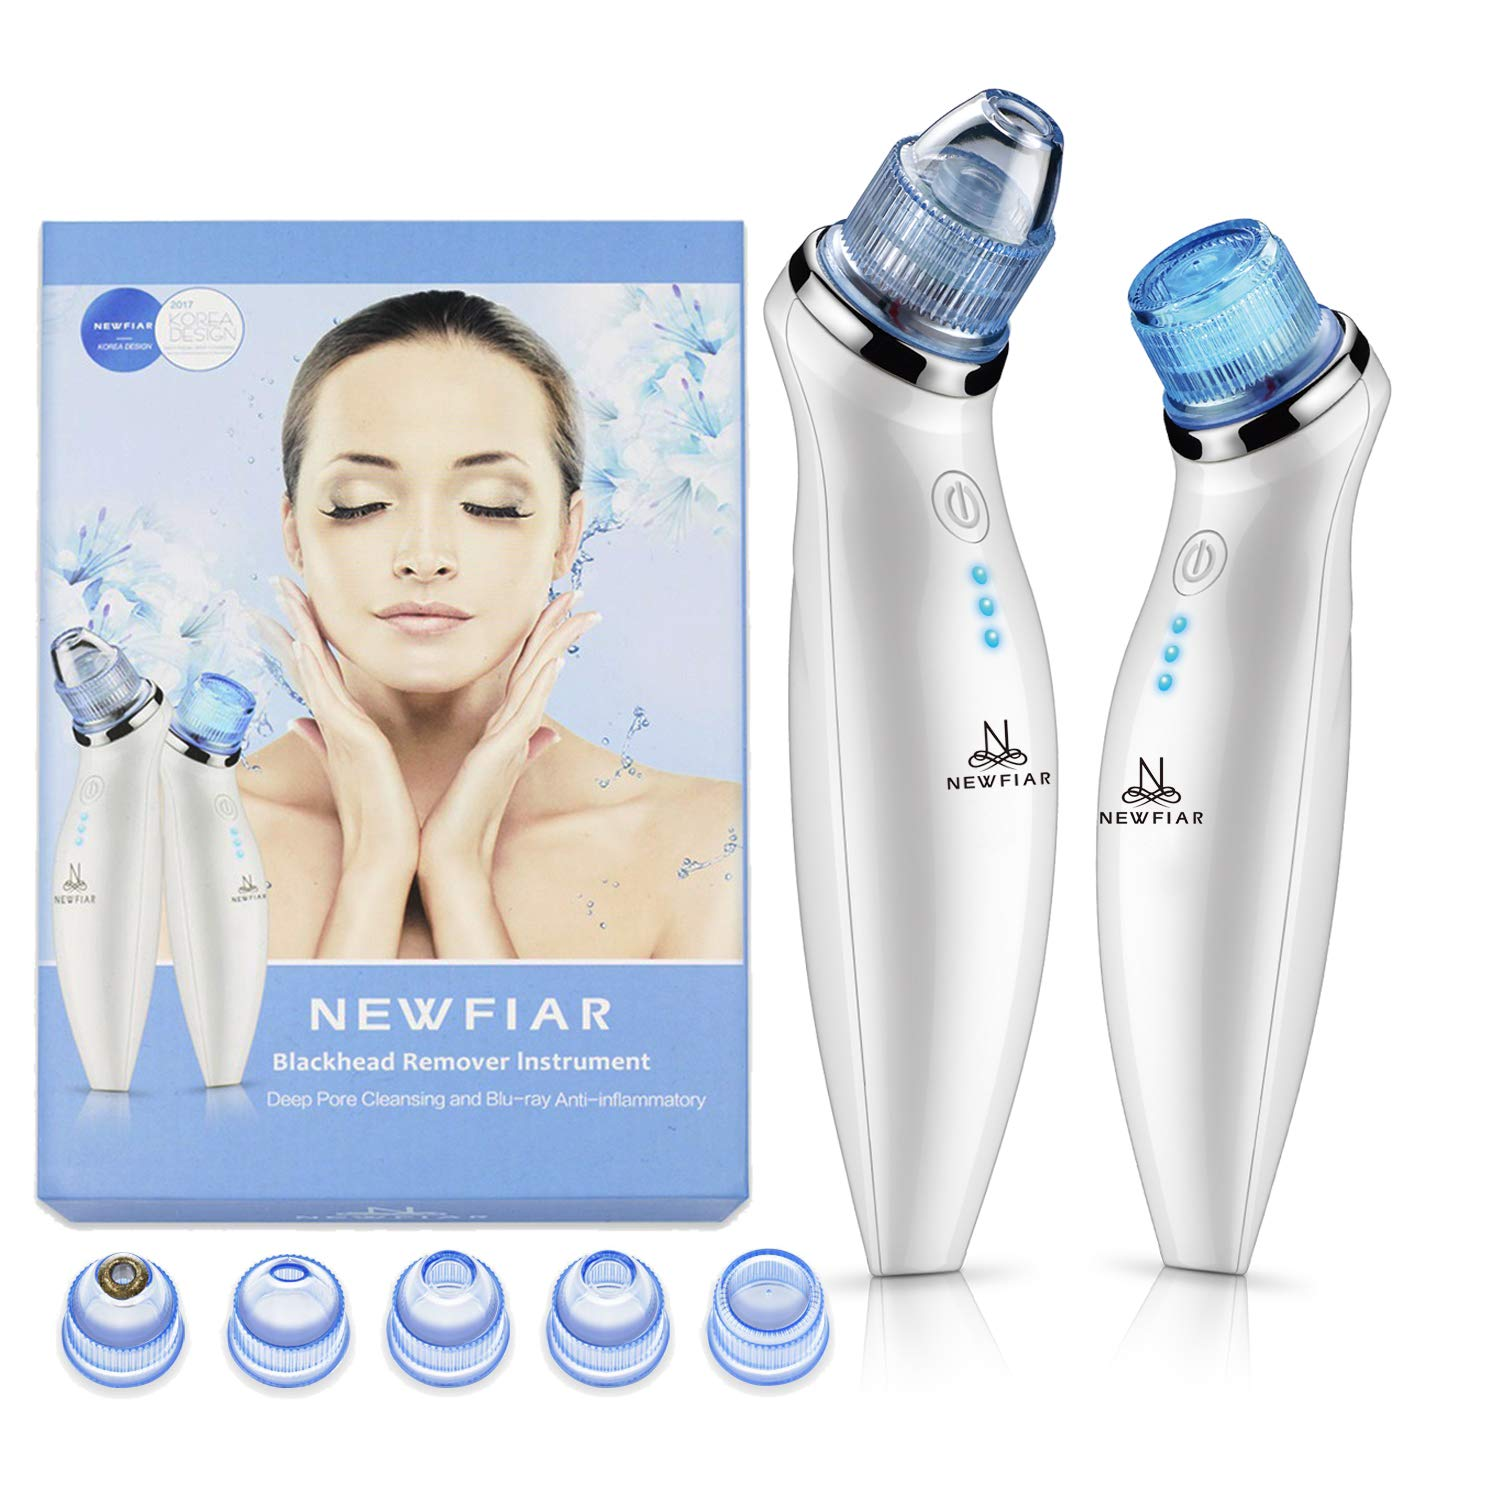 [2018 UPGRADED] Comedo Suction, NEWFIAR X6 Portable Blackheads Removal Tool, Pore and Blackhead Vacuum for Skin Care, Blu-ray Design and 5 Interchangeable Heads, USB Charging (Color: White) Padia Concept